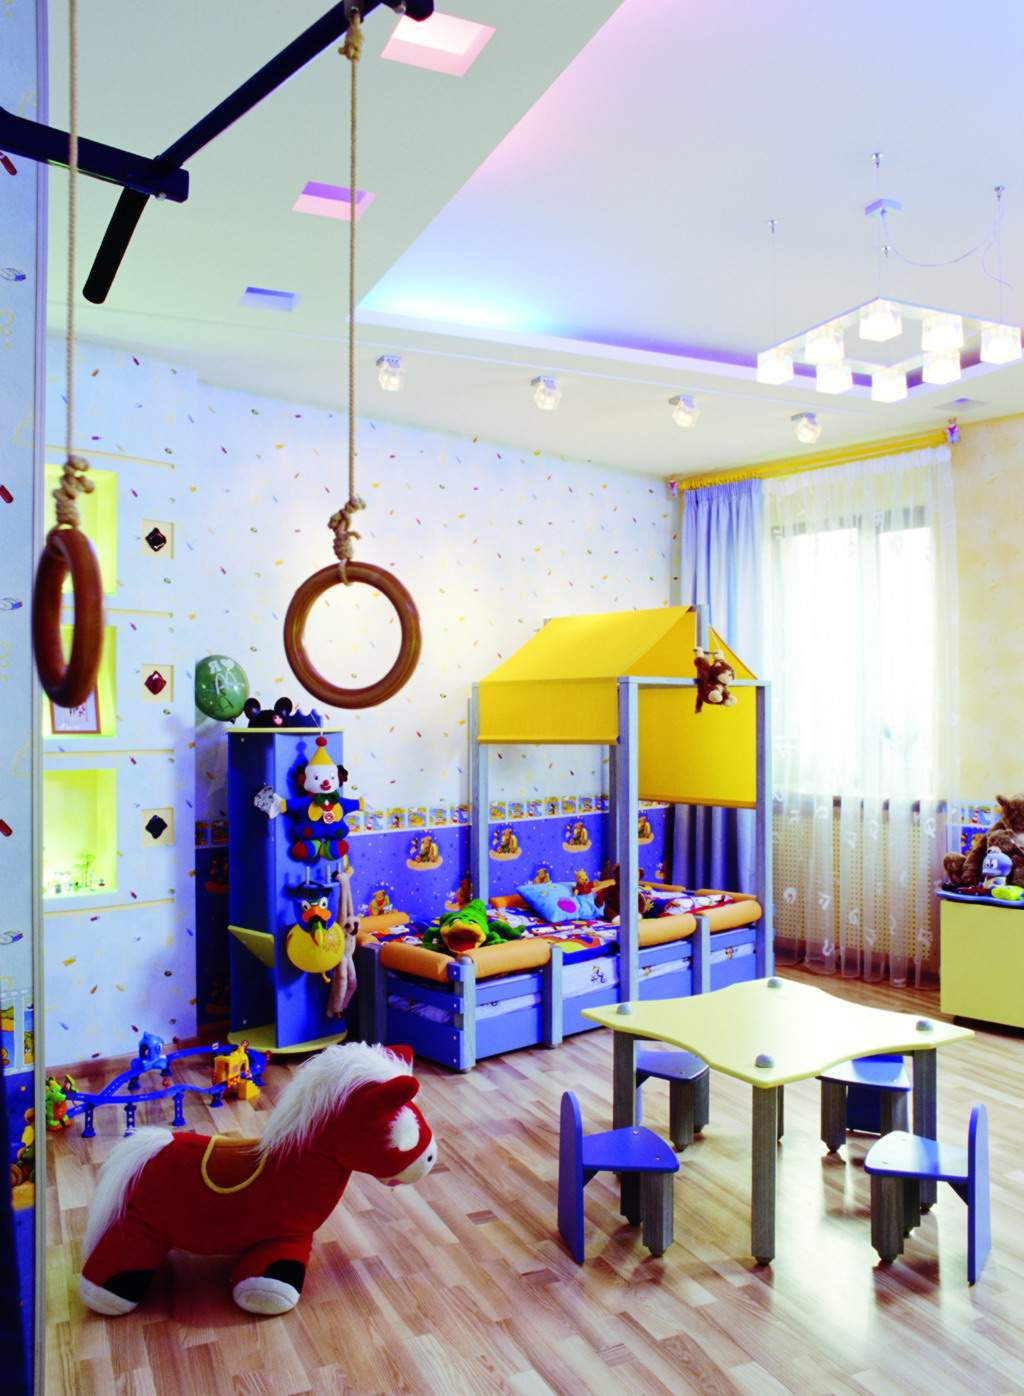 15 creative kids bedroom decorating ideas for Best home decor ideas